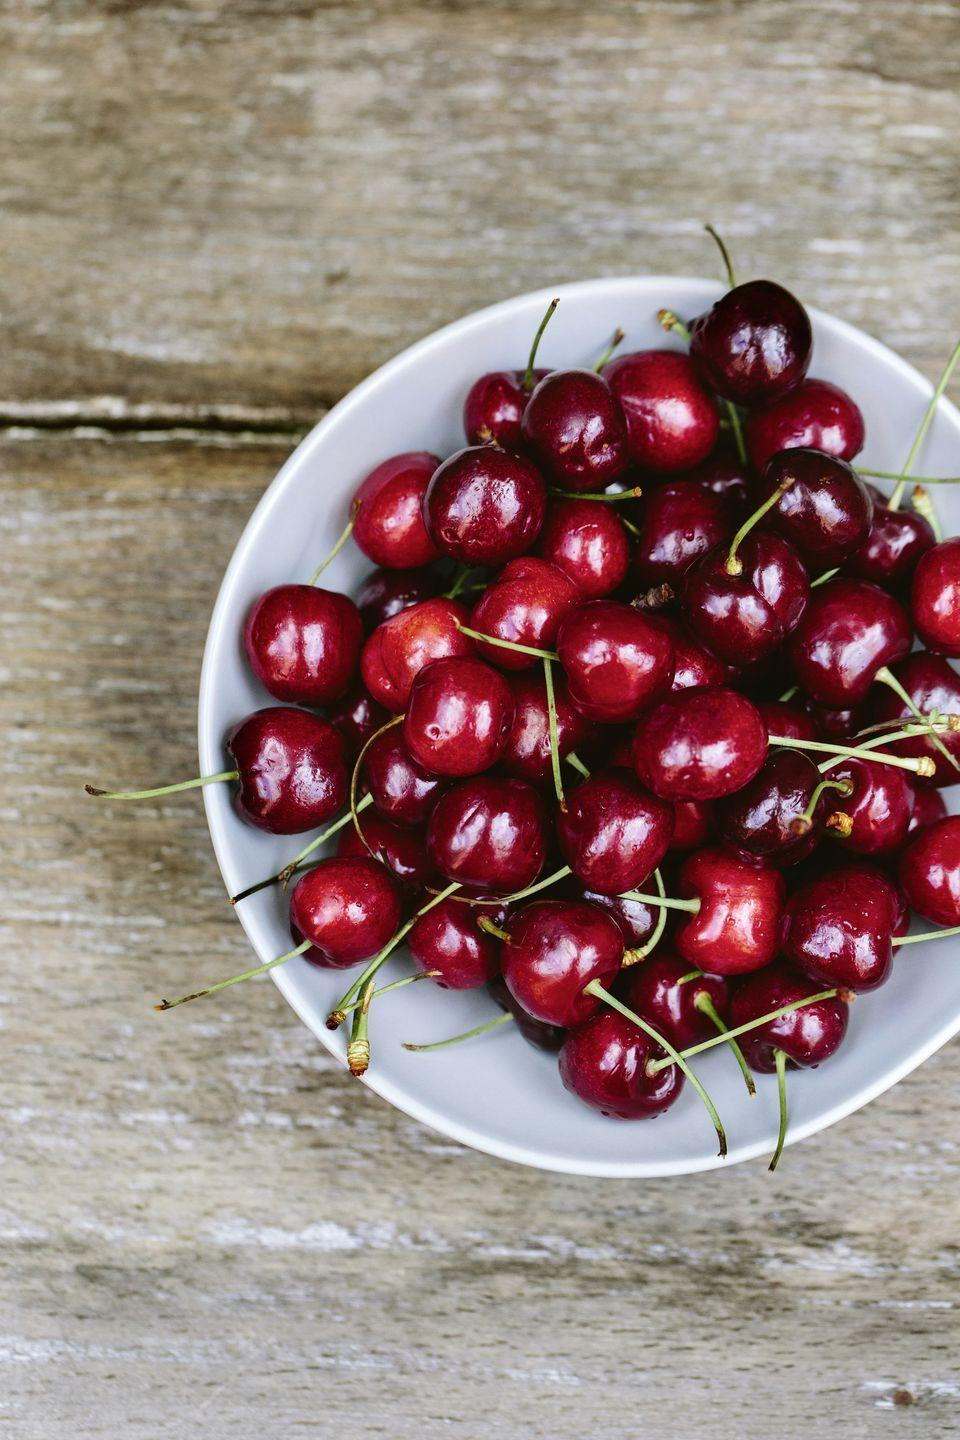 "<p>A cherry gets its color from anthocyanin, a type of phytonutrient with powerful antioxidant capabilities. Try adding frozen cherries to <a href=""https://www.goodhousekeeping.com/food-recipes/healthy/g4060/healthy-smoothie-recipes/"" rel=""nofollow noopener"" target=""_blank"" data-ylk=""slk:morning smoothies"" class=""link rapid-noclick-resp"">morning smoothies</a> or tossing dried, unsweetened cherries with salads.</p>"